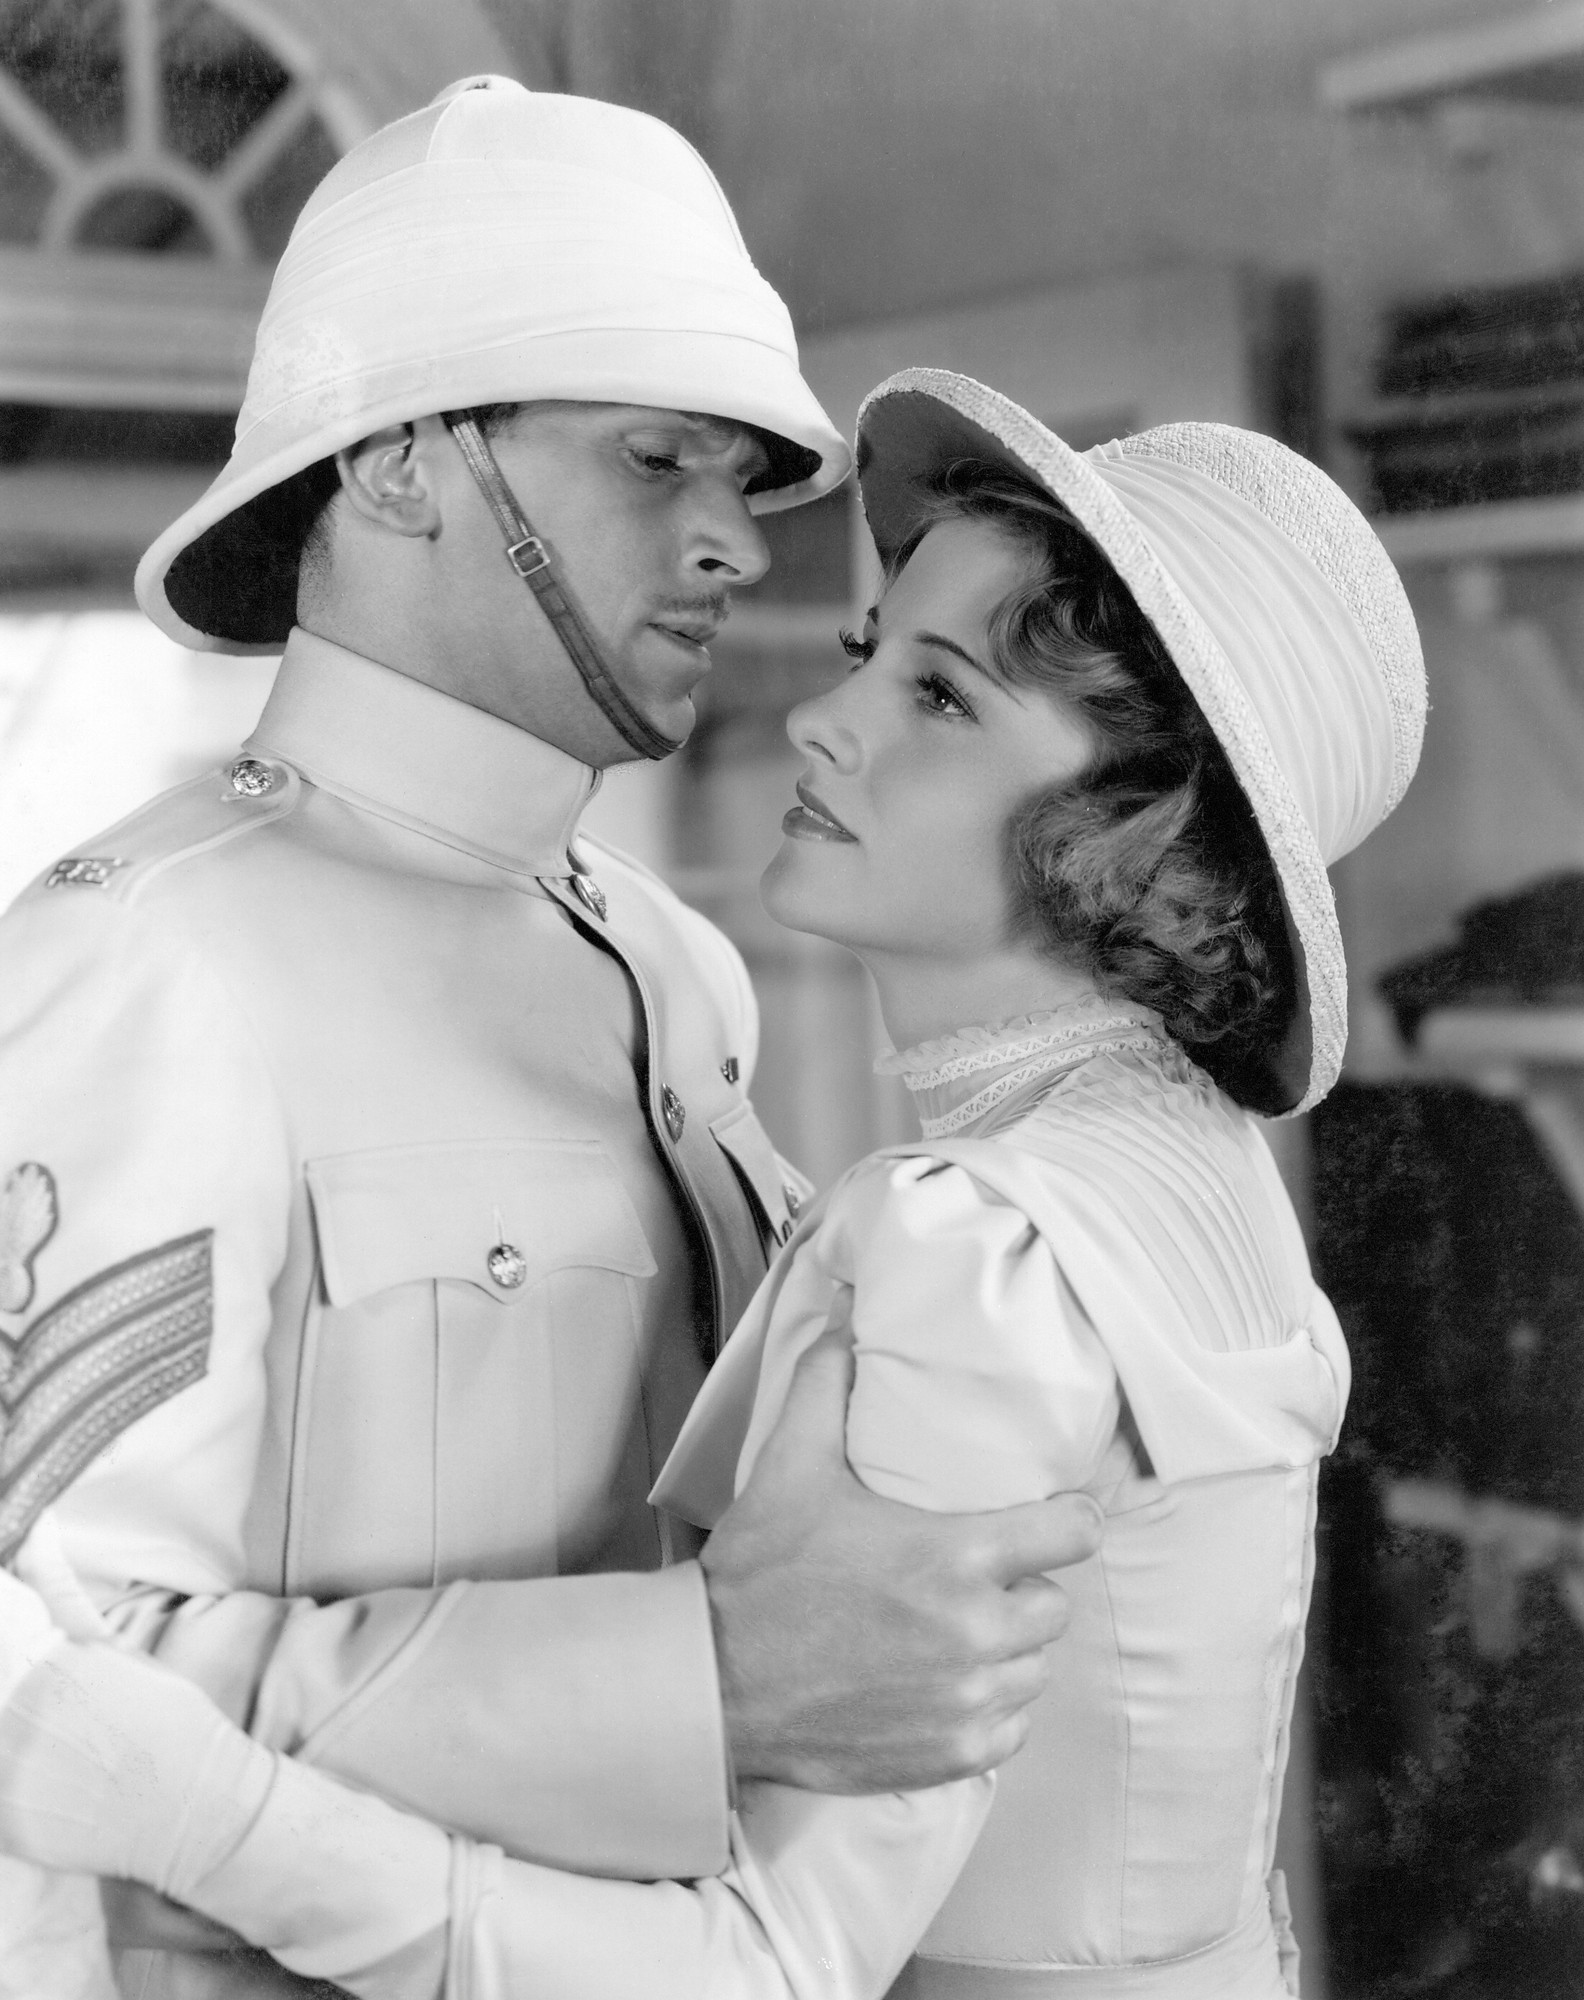 Gunga Din 1939 Directed By George Stevens Moma It is about racism and classism and stereotypes and redemption and regret. gunga din 1939 directed by george